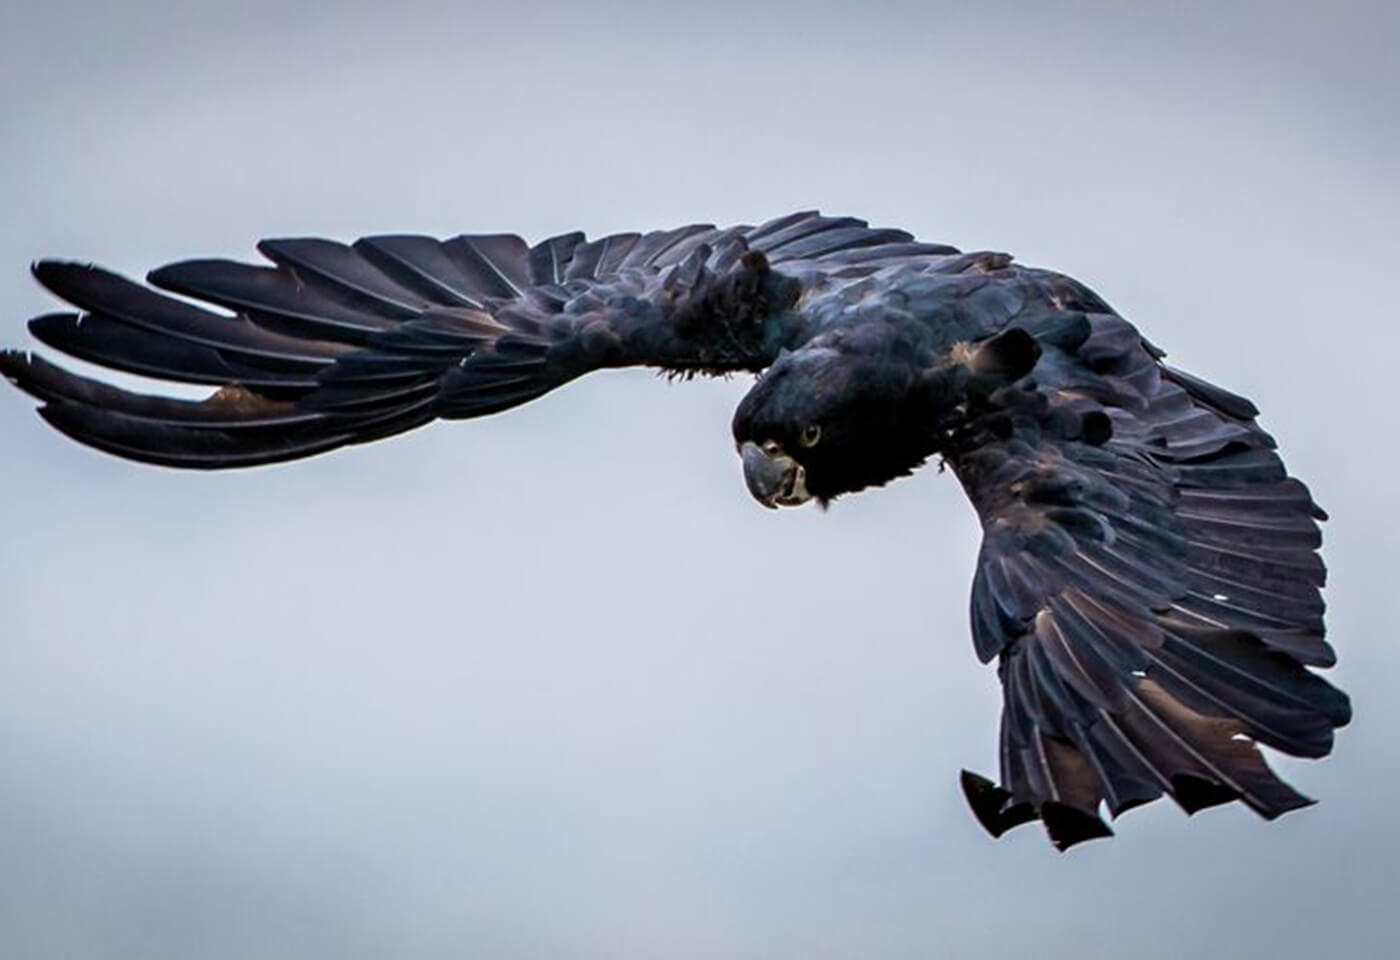 black bird wings spread flying